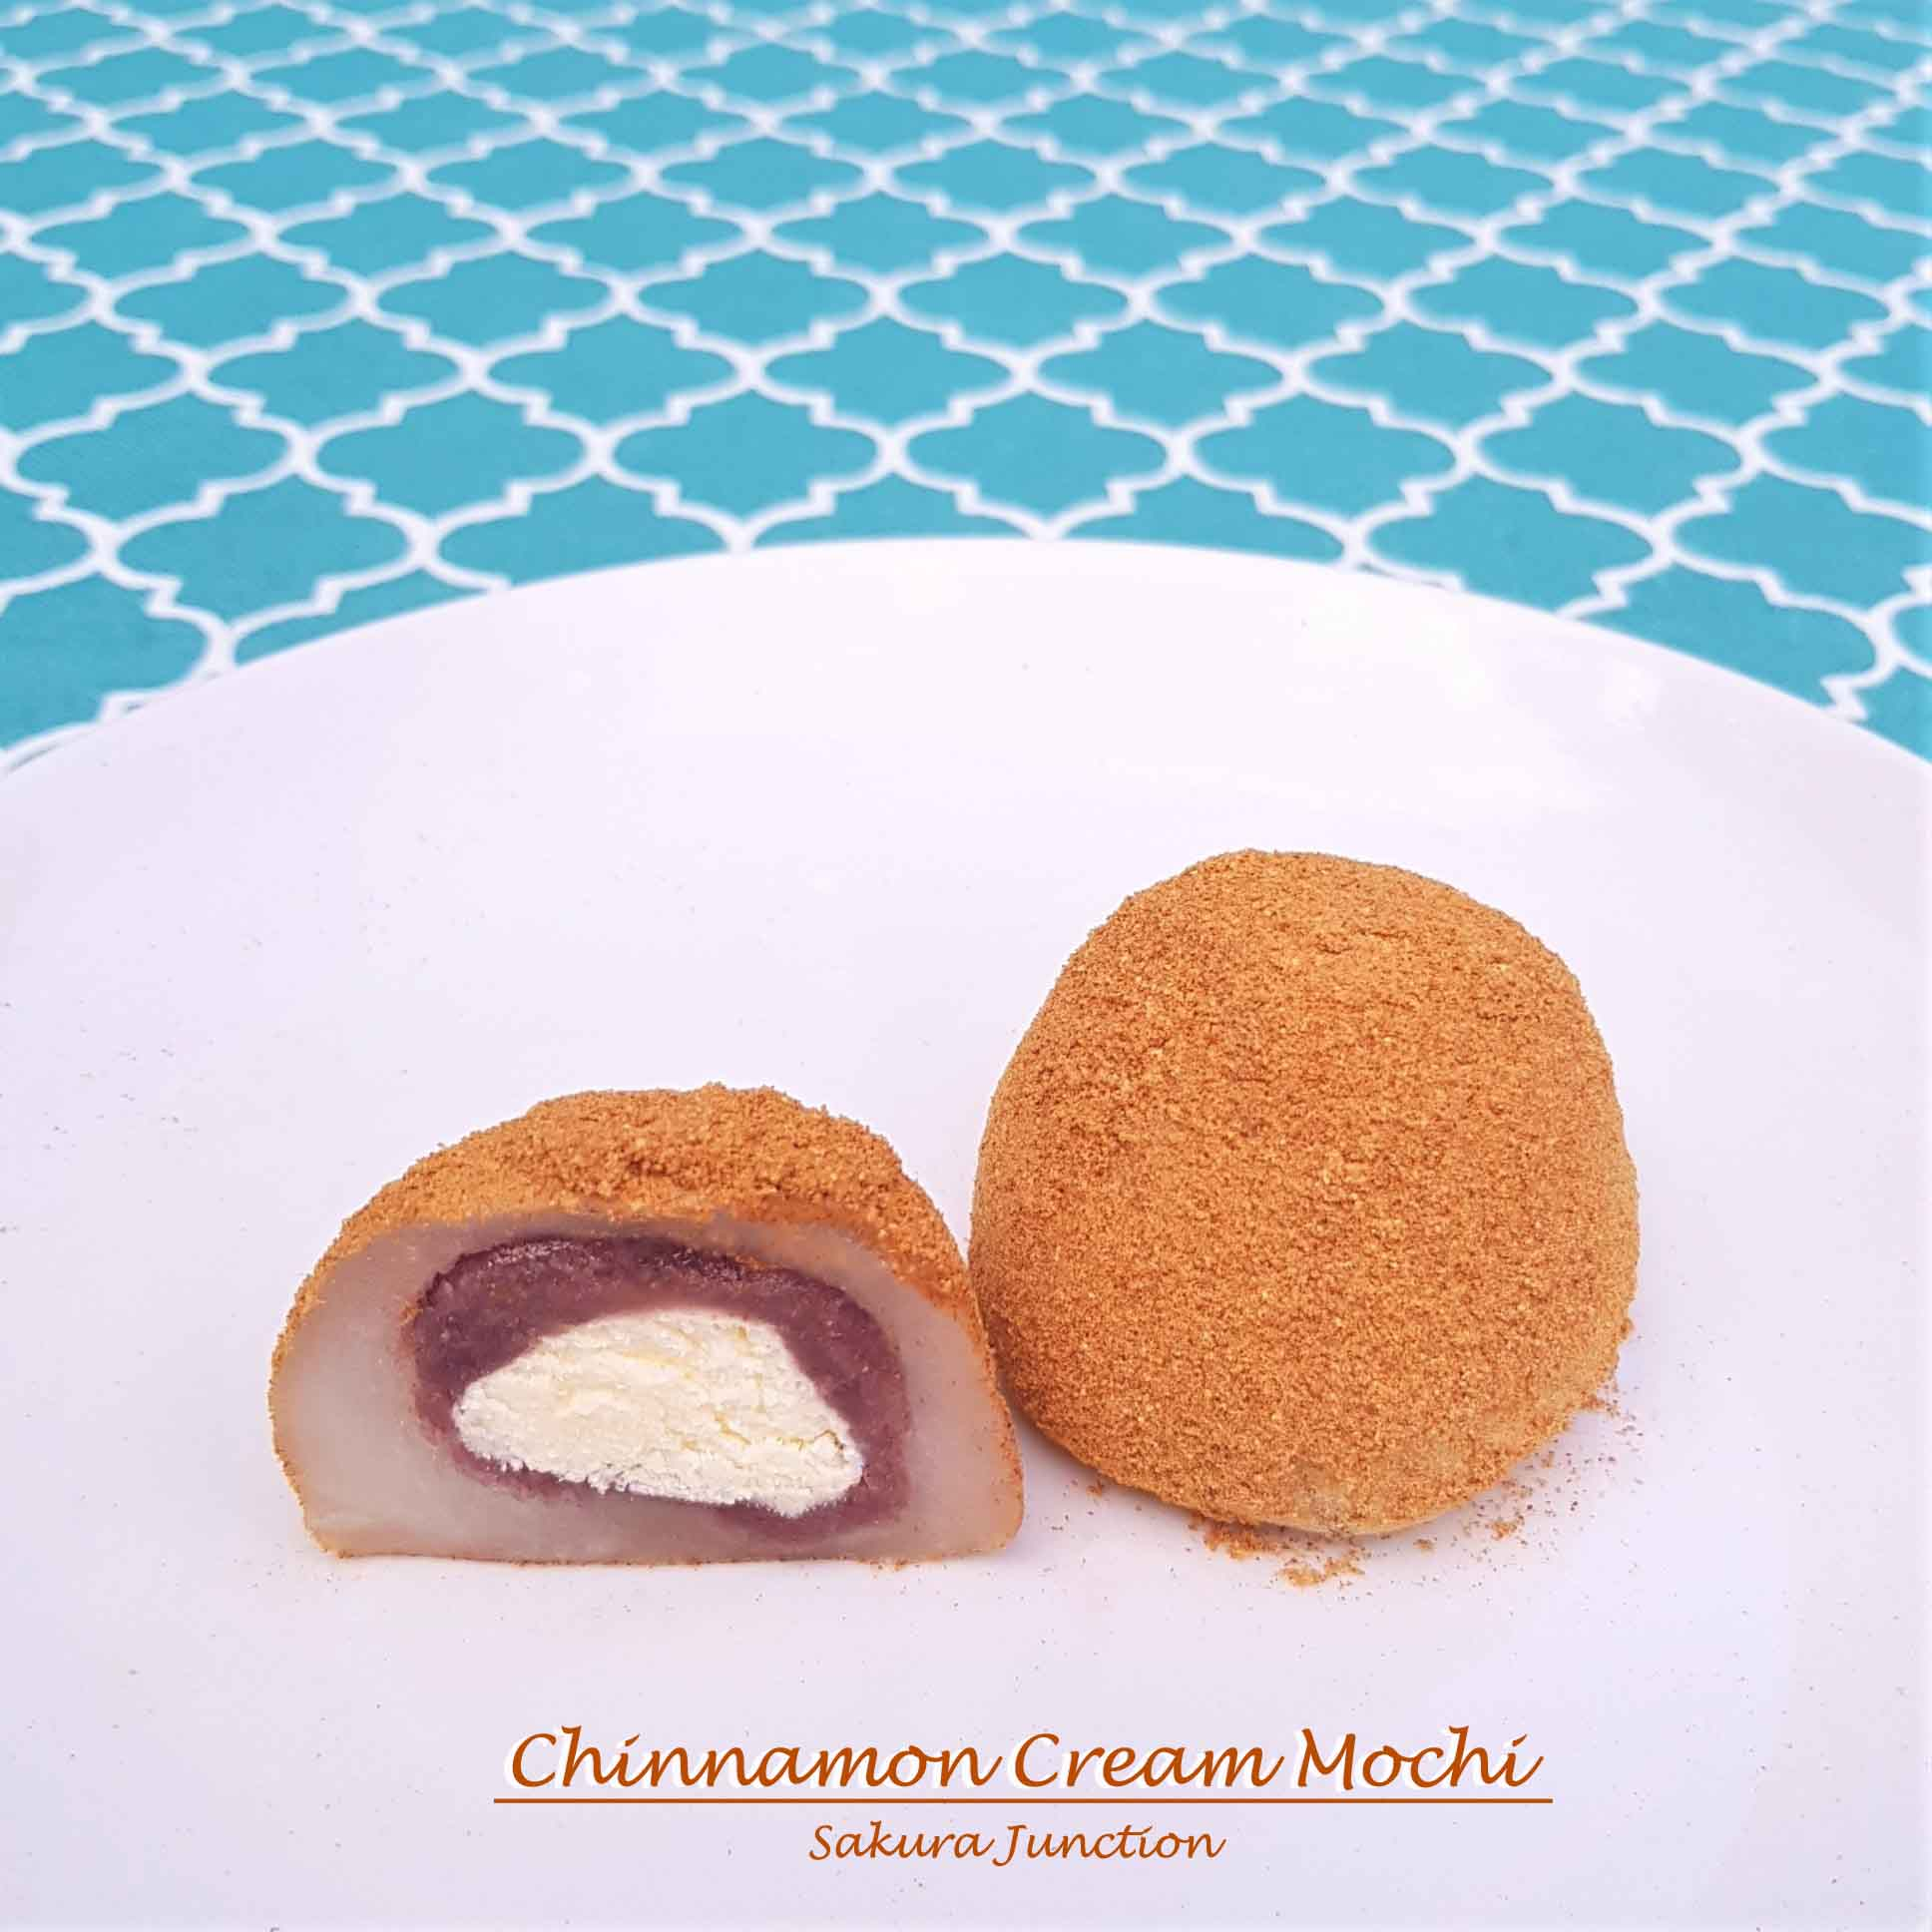 Cinnamon Cream Mochi